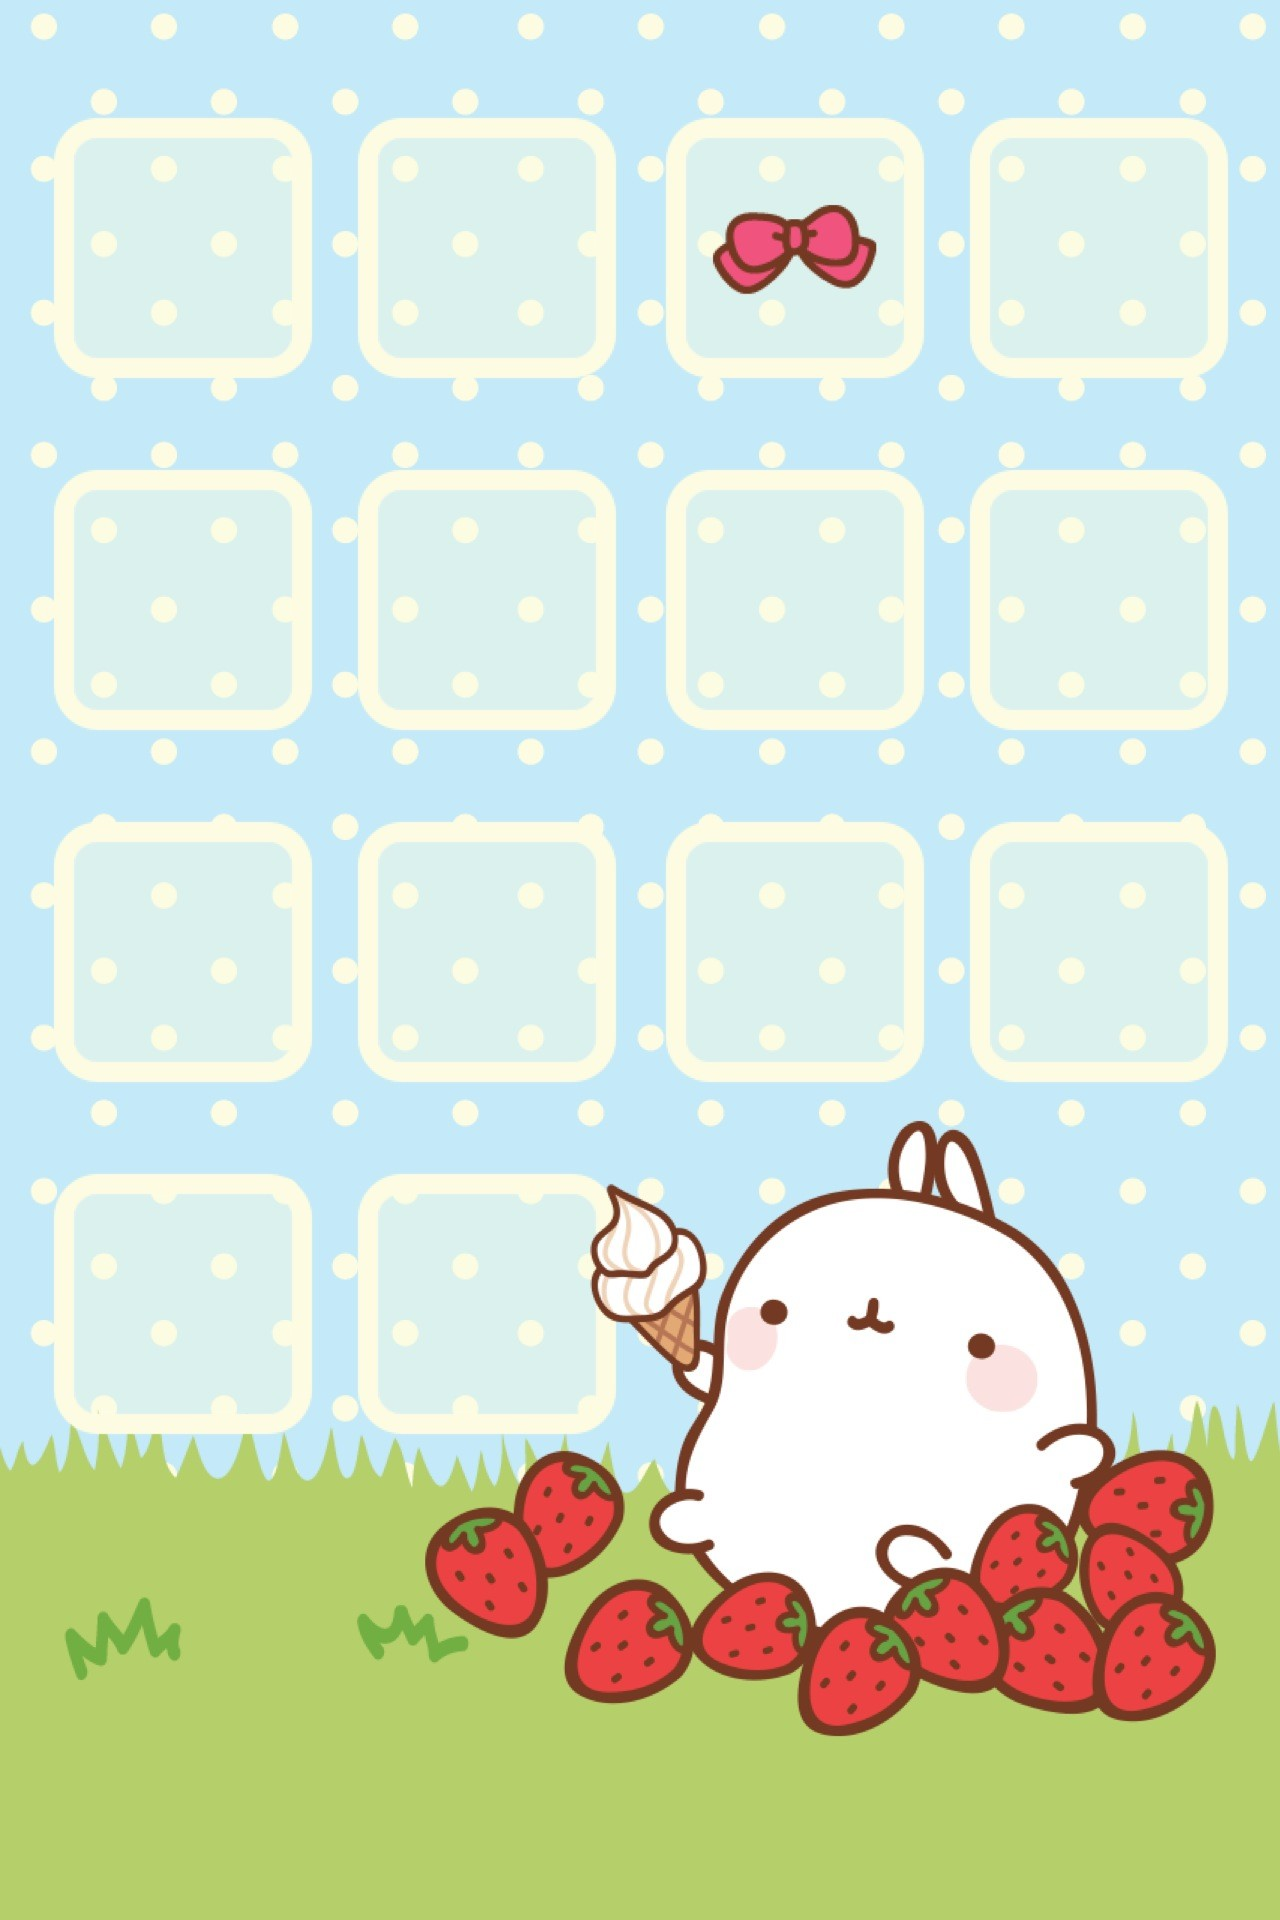 Res: 1280x1920, Molang iPhone Theme & Wallpaper